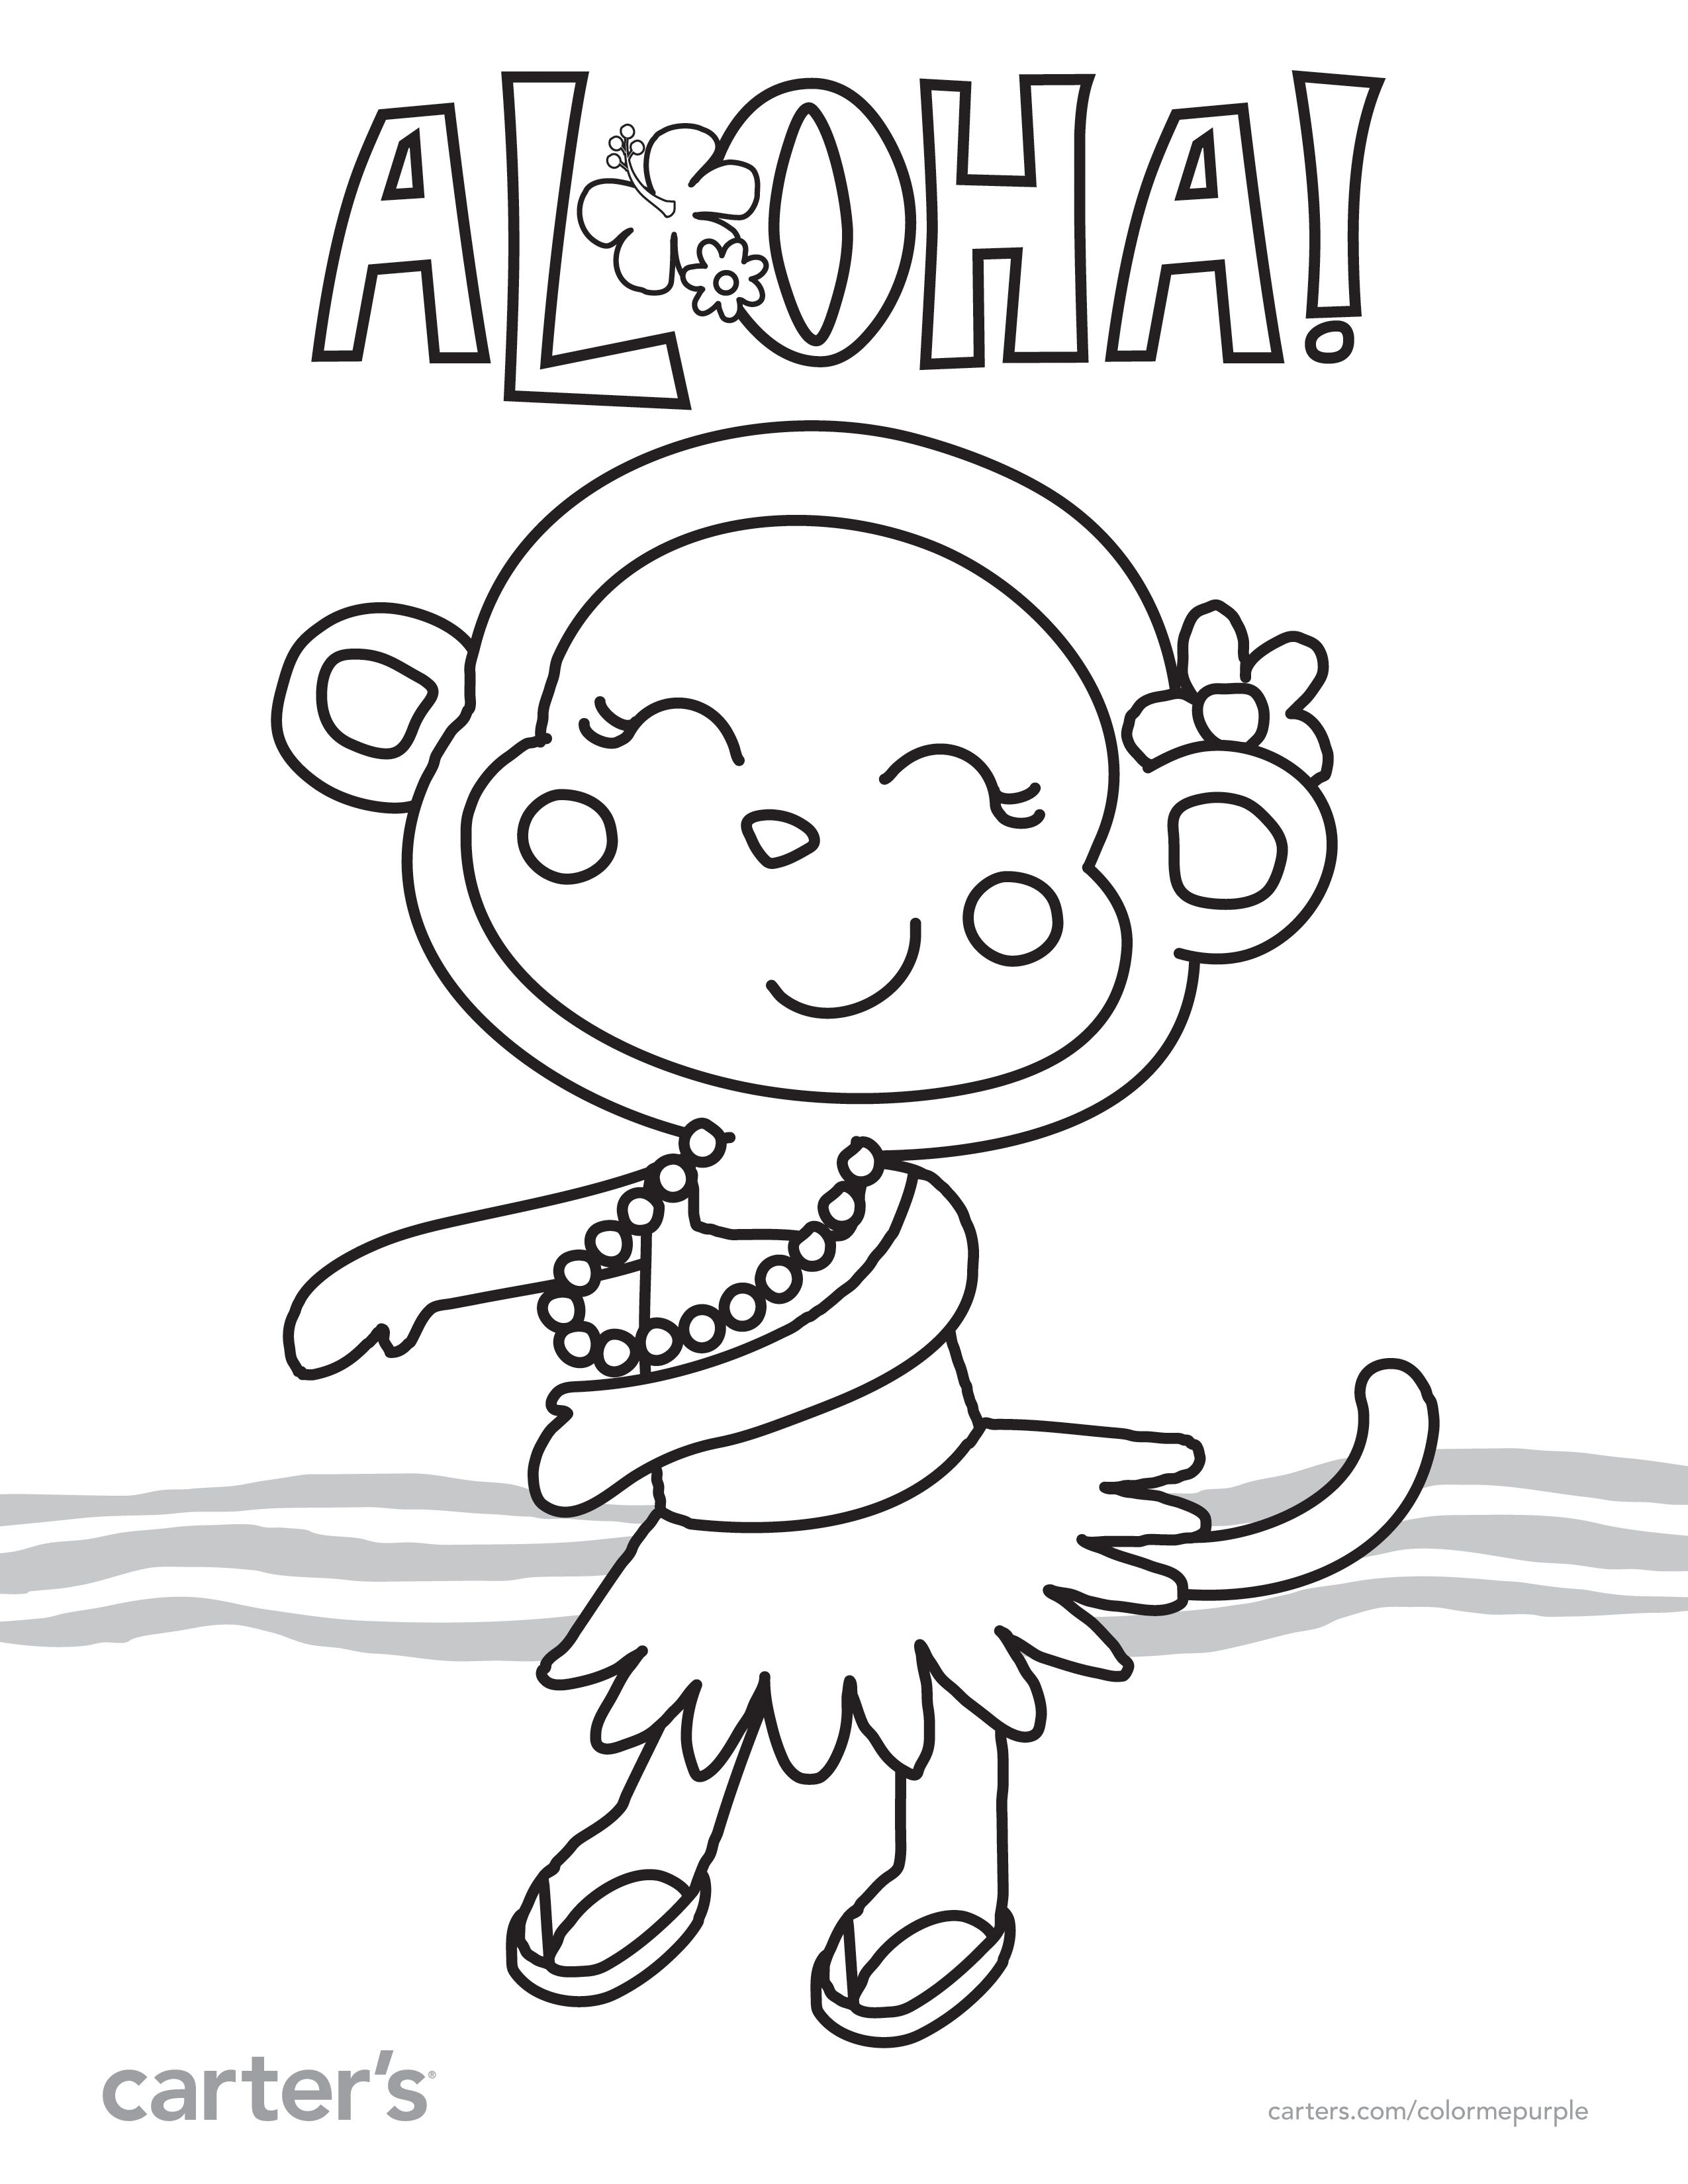 Aloha Take This And Other Color Sheets On Vacation With